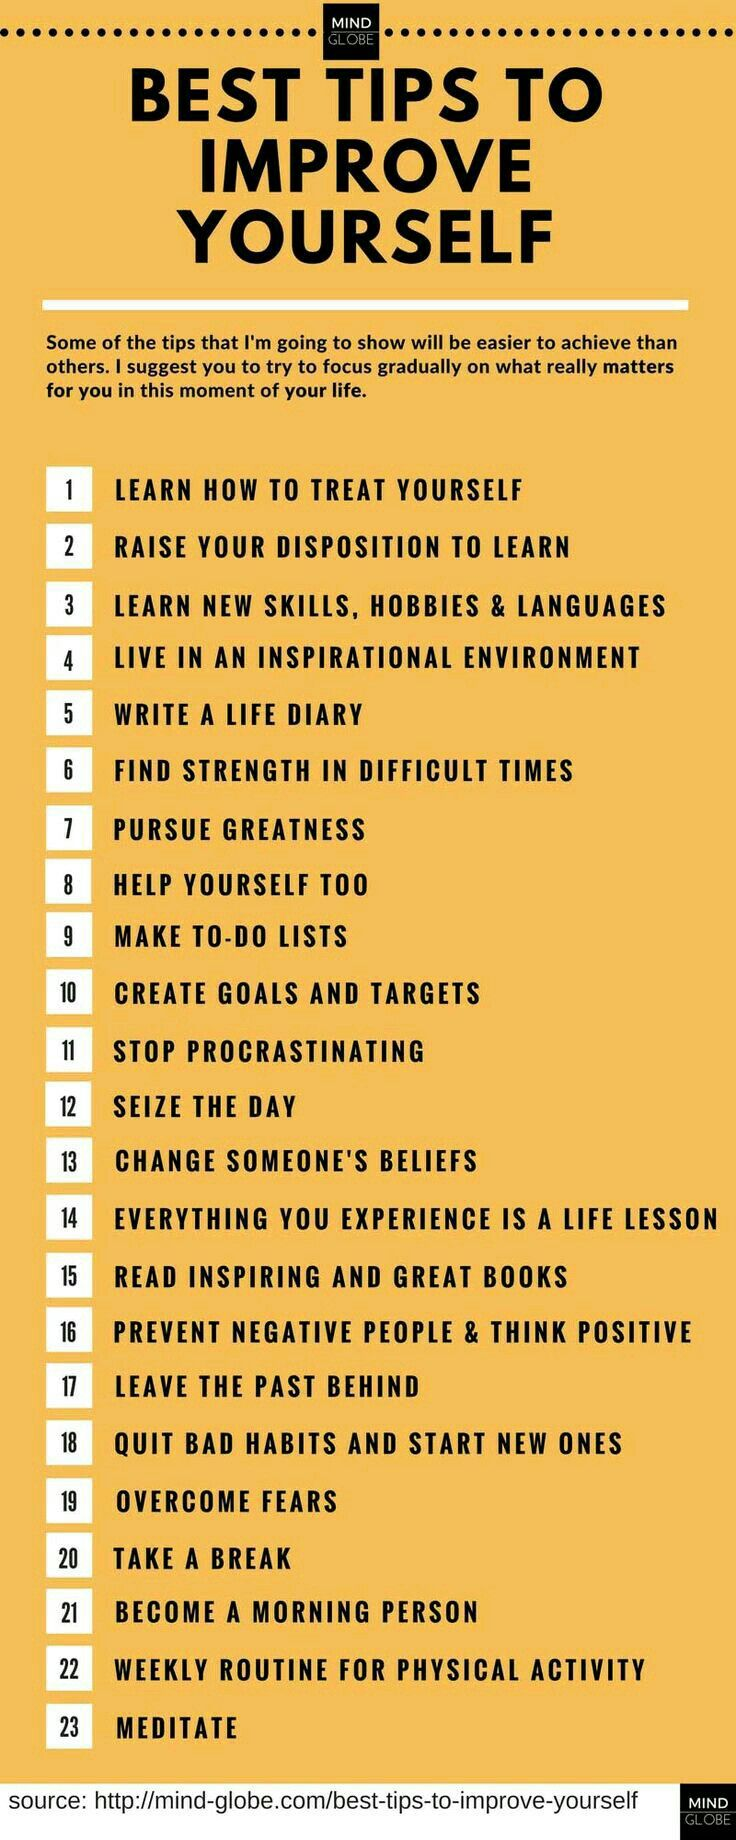 23 ways to improve yourself. self life inspiration